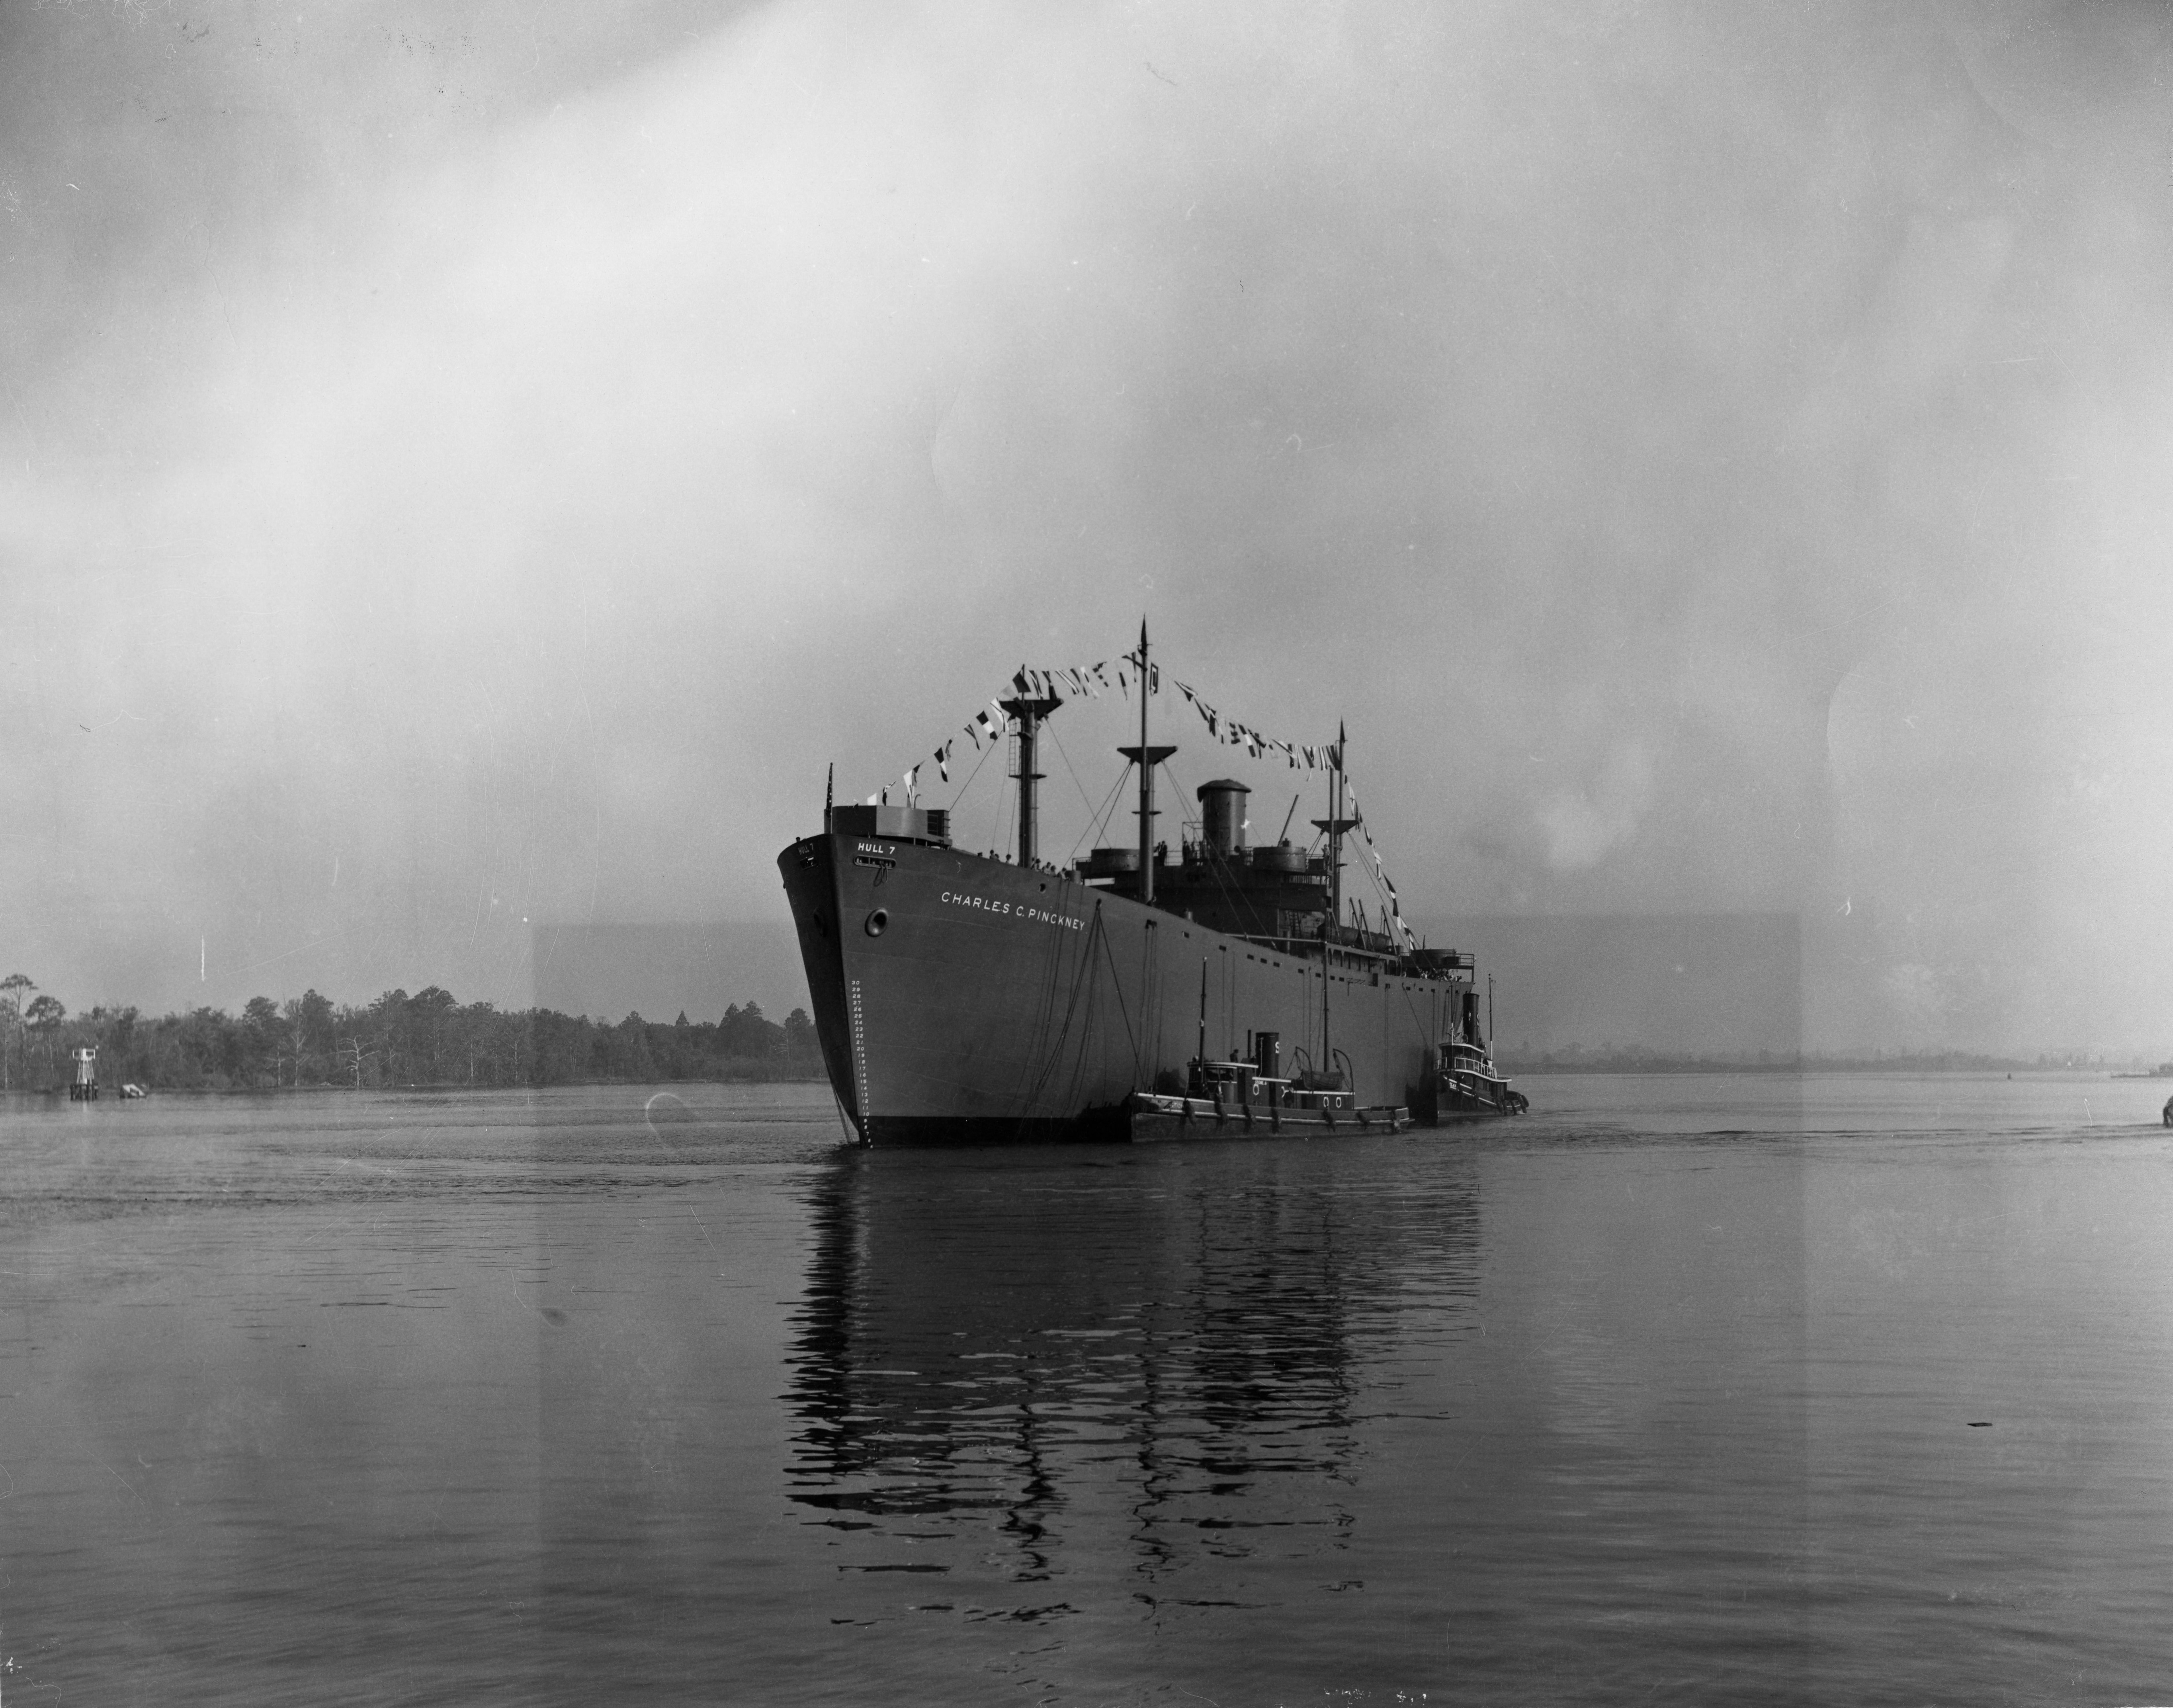 SS Charles C. Pinckney in the Cape Fear River guided by tugboats